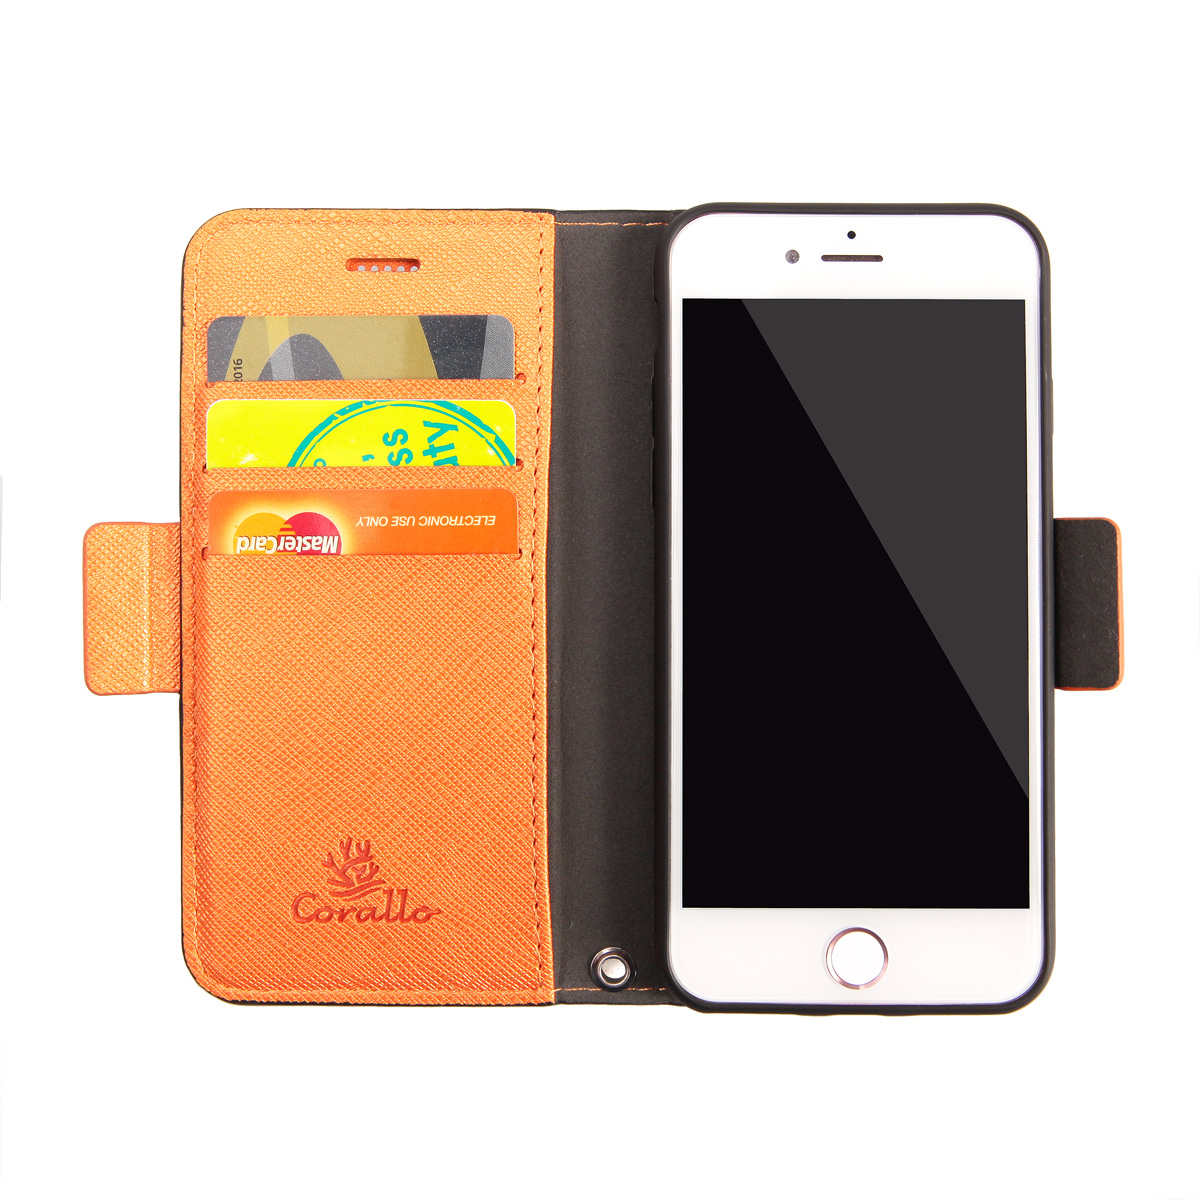 Corallo<BR>Nu for iPhone6/iPhone6s/iPhone7/iPhone8<BR>《Black+Orange》<BR>CR_I47CSPLNU_BO